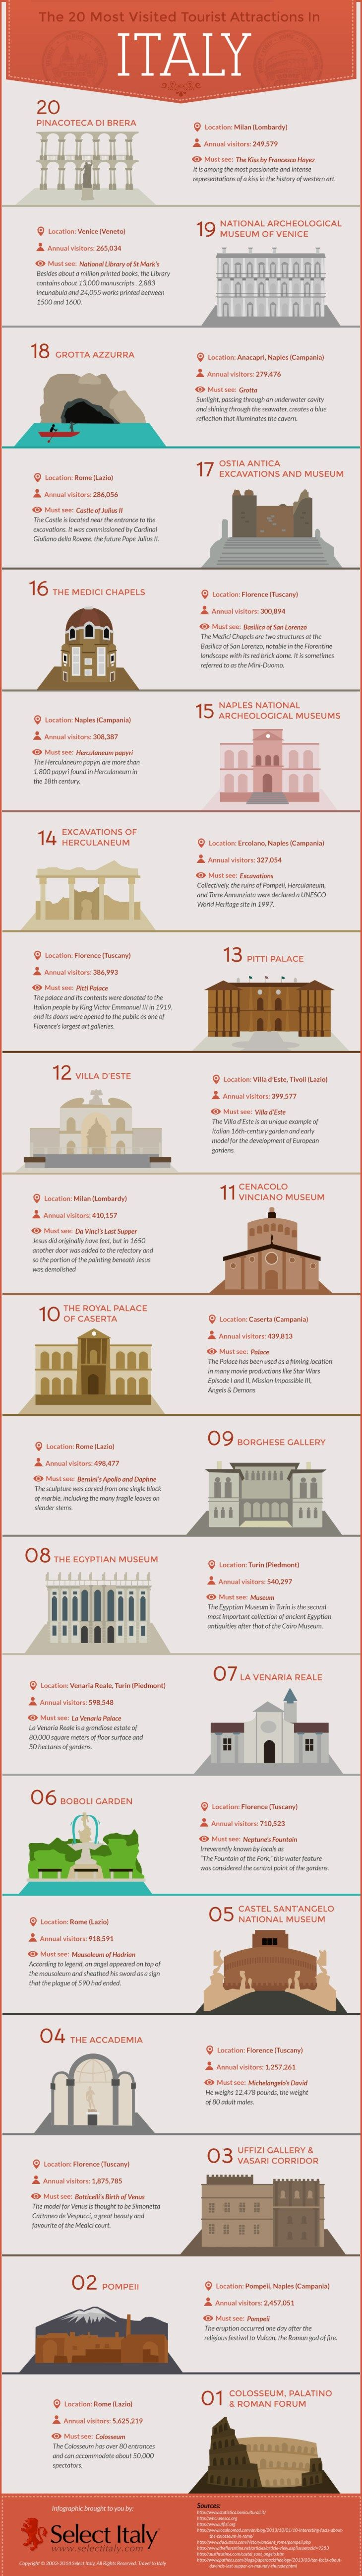 The 20 Most Visited Tourist Attractions in Italy [INFOGRAPHIC] | Espresso by Select Italy